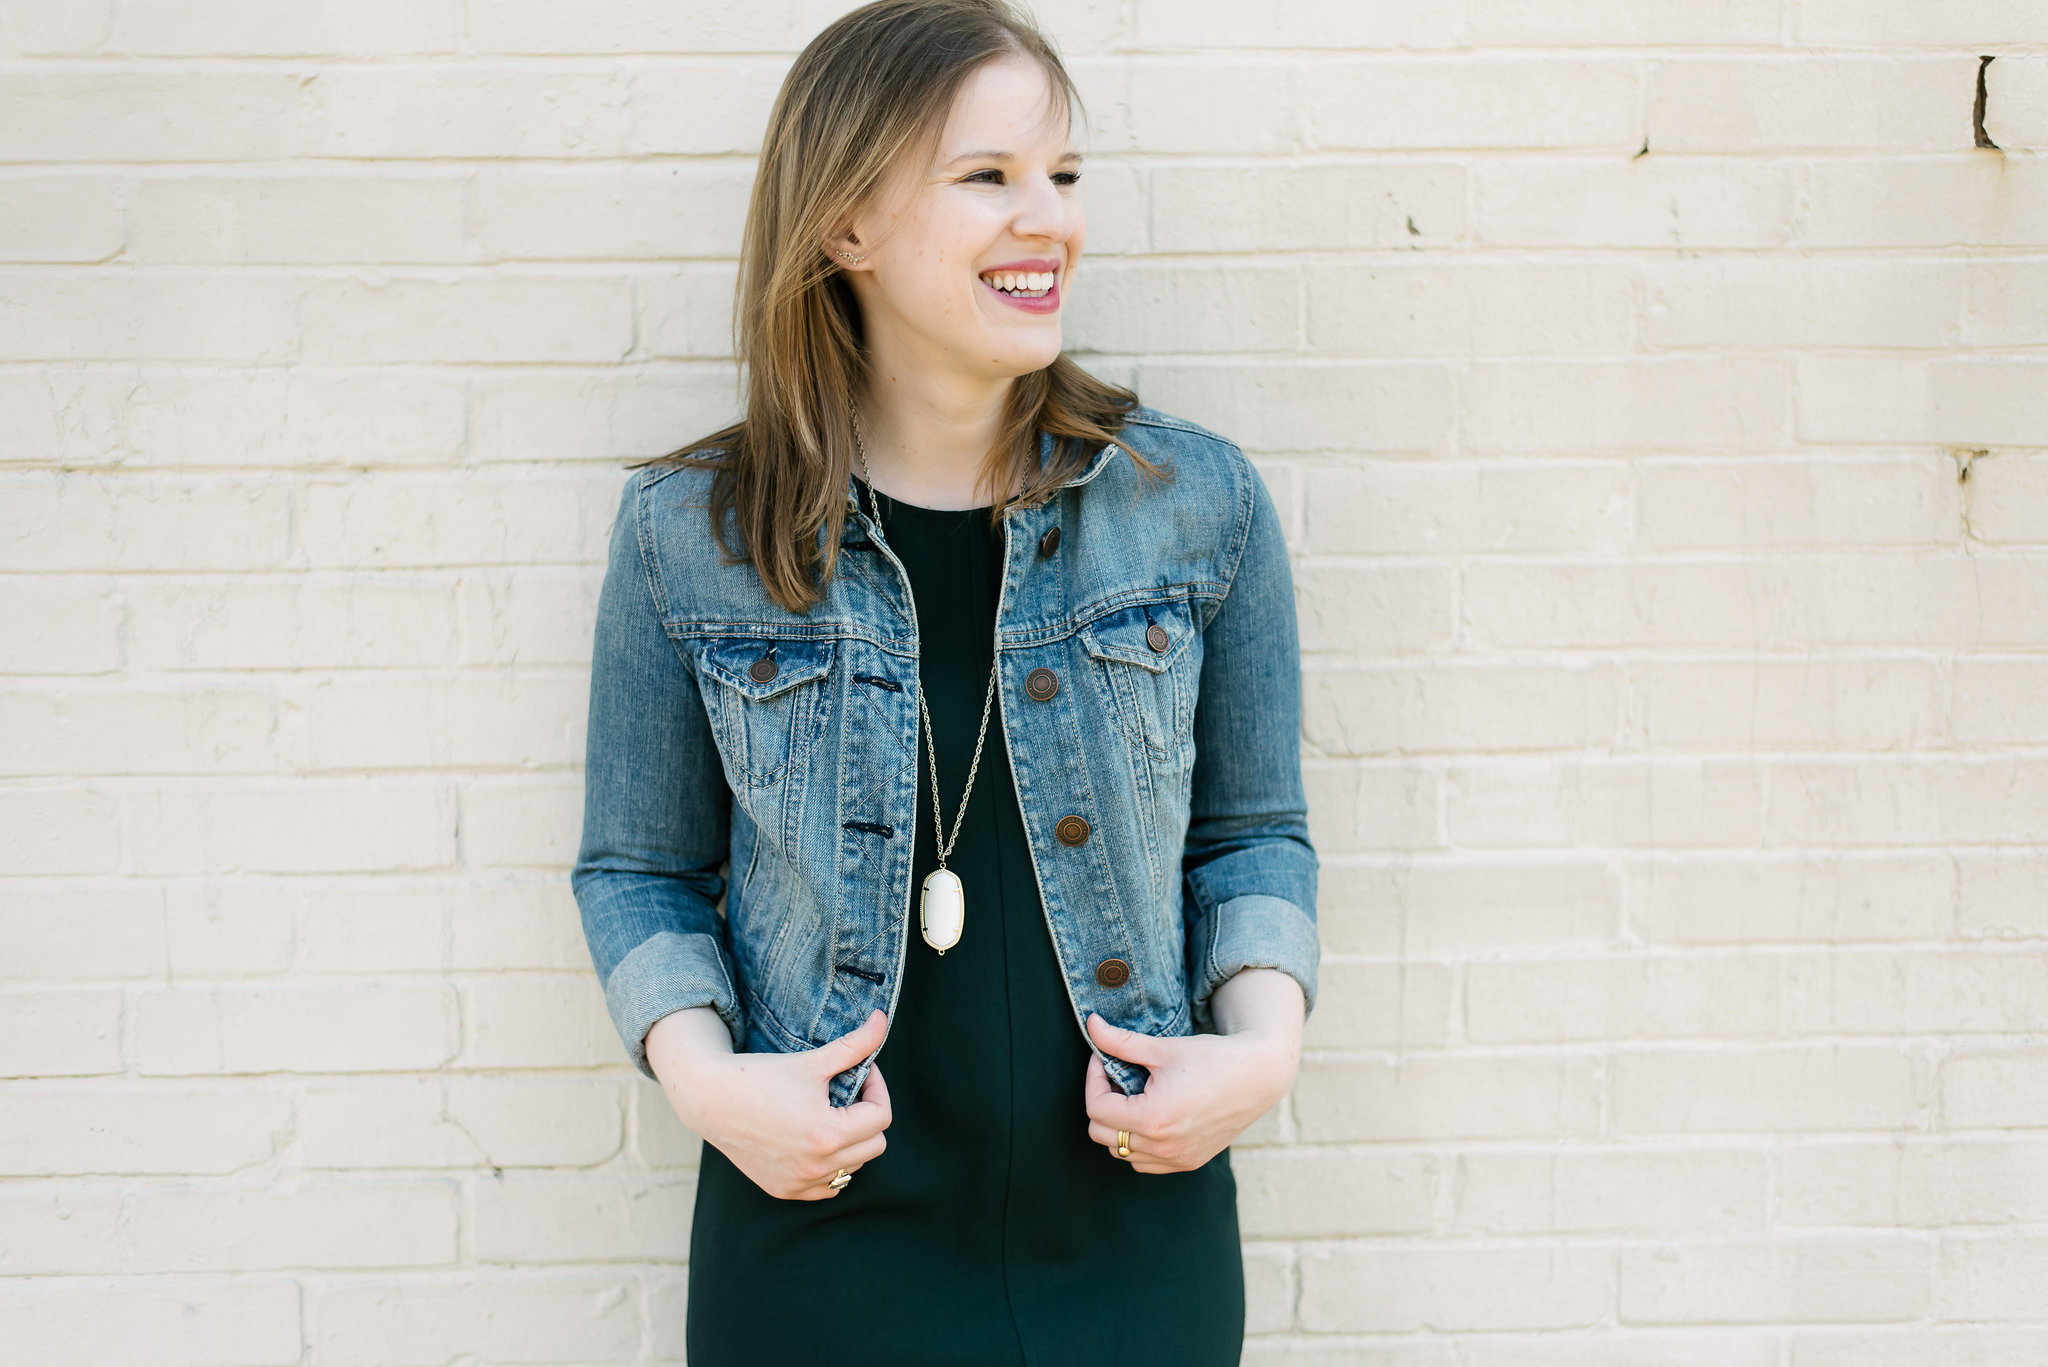 The Everlane GoWeave Tank Dress | Something Good, denim jacket, american eagle outfitters, @danaerinw